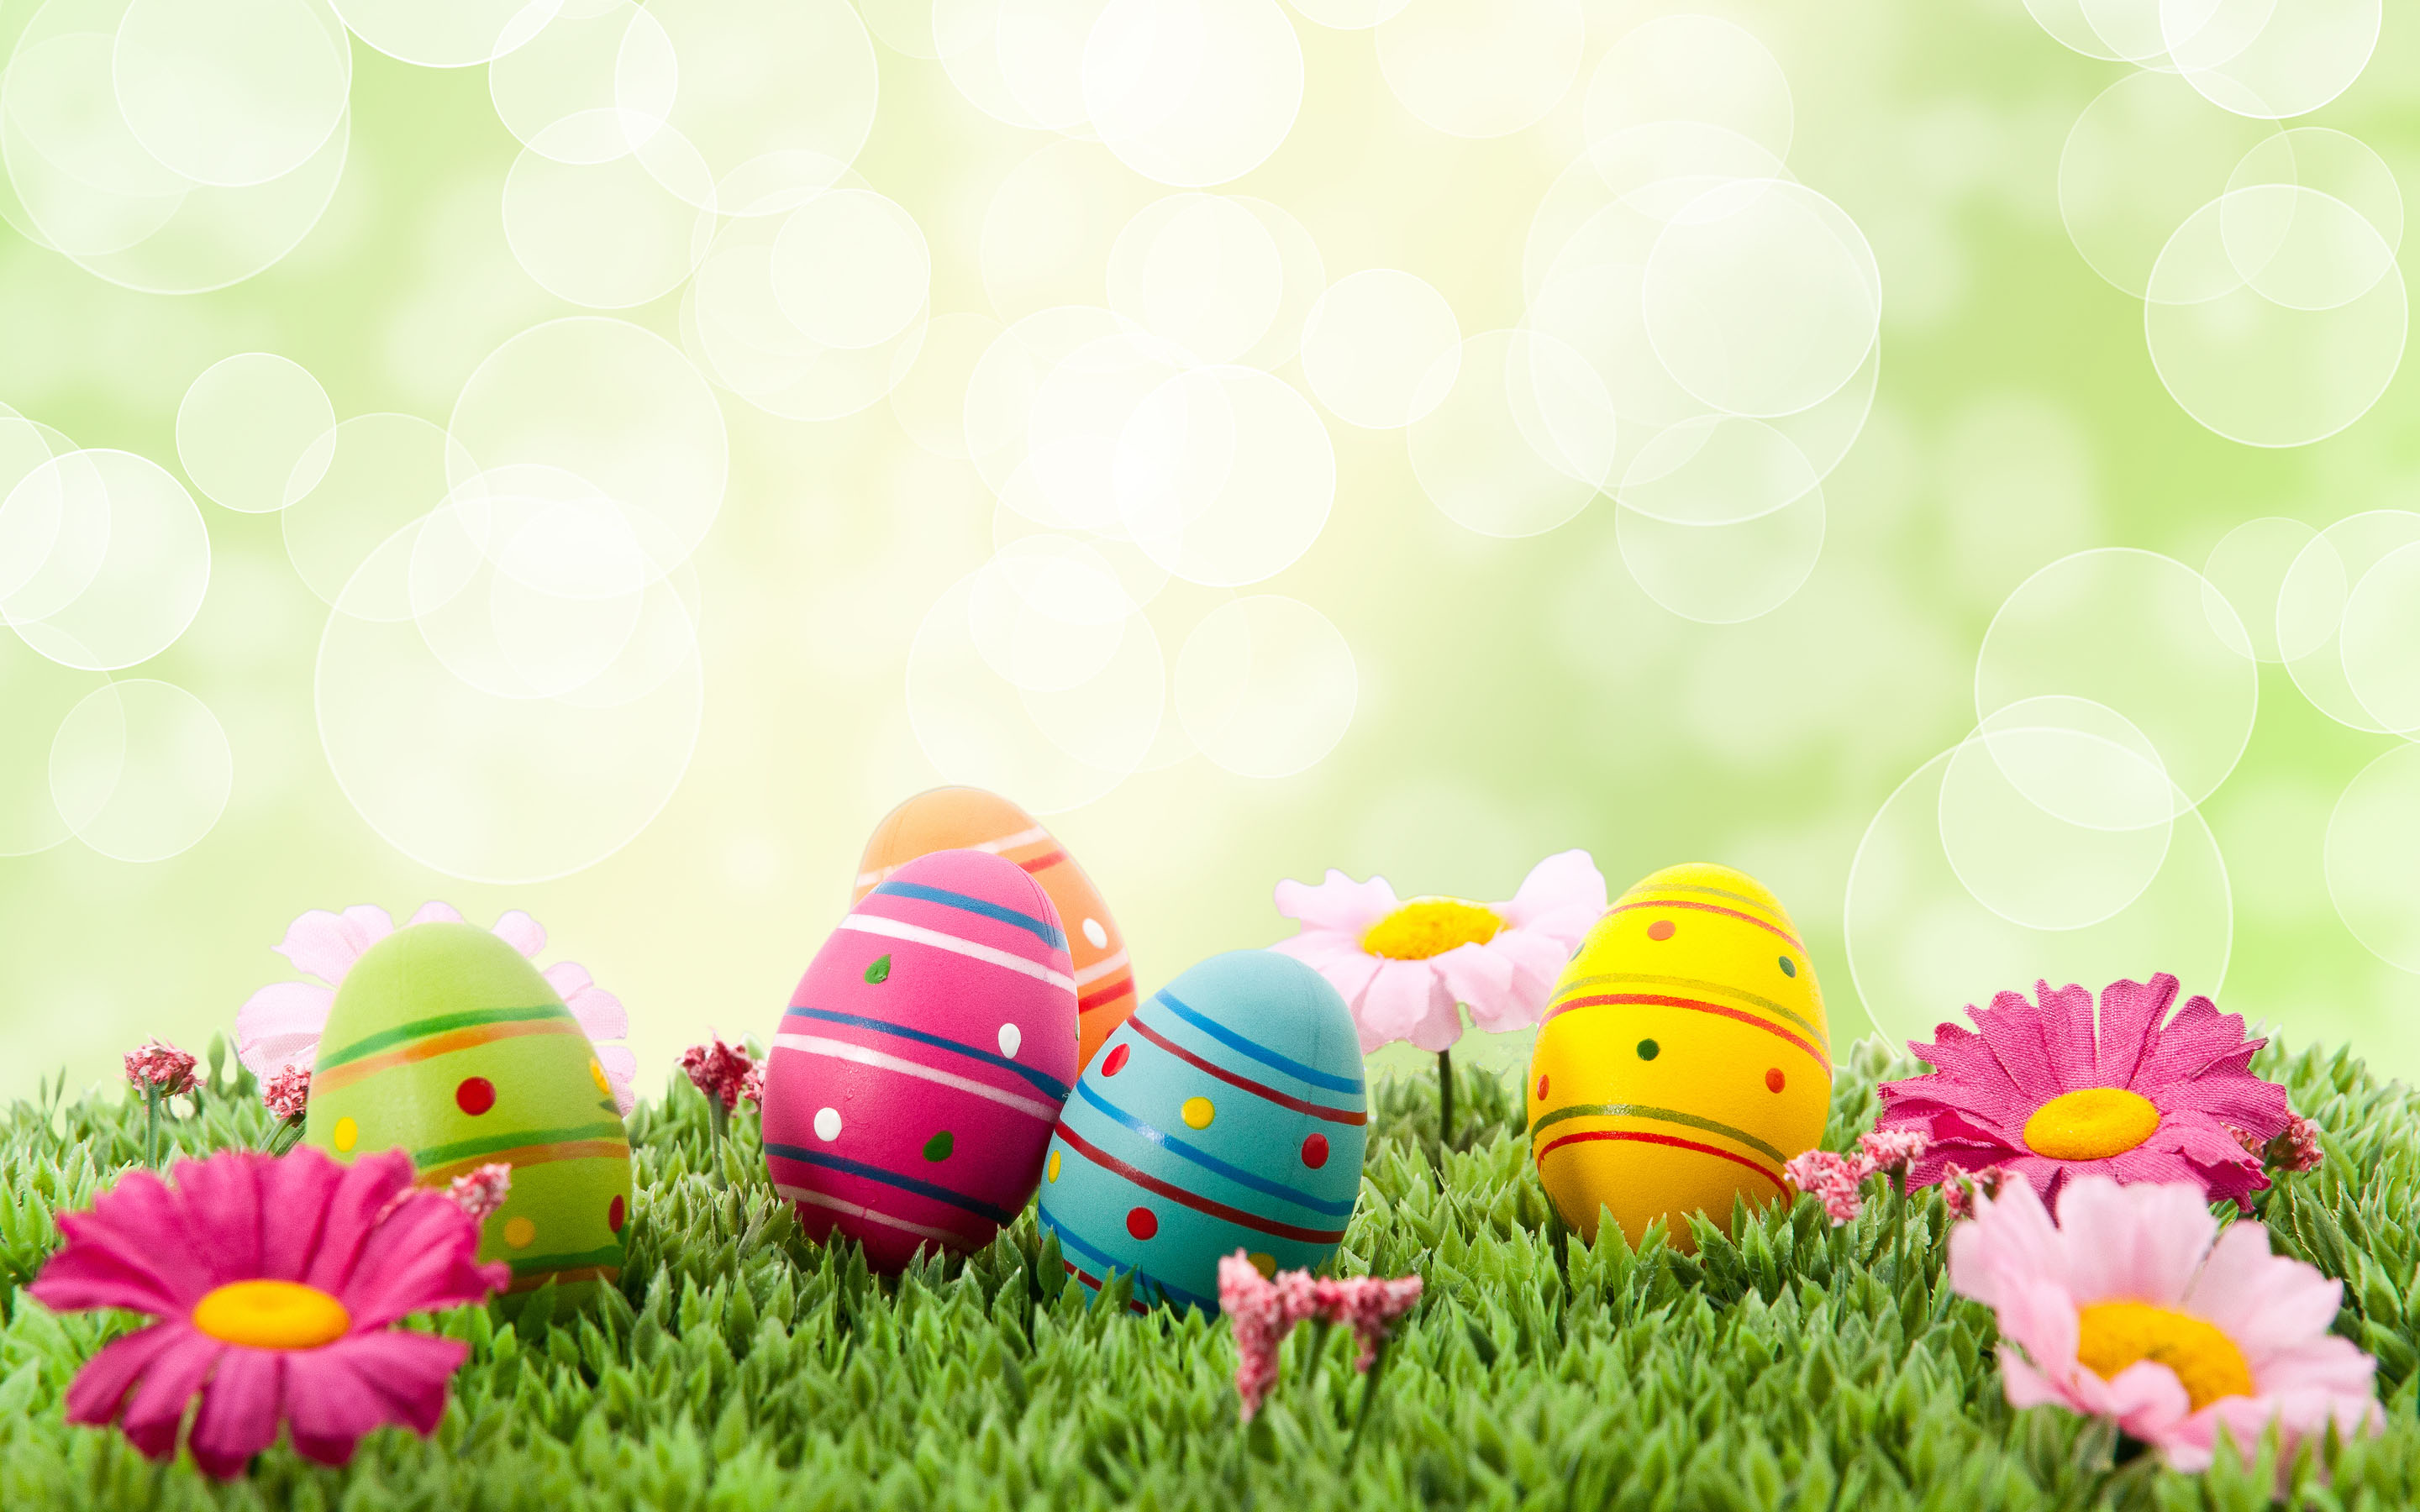 Kids Fall Wallpaper Easter Wallpaper 2019 Dr Odd